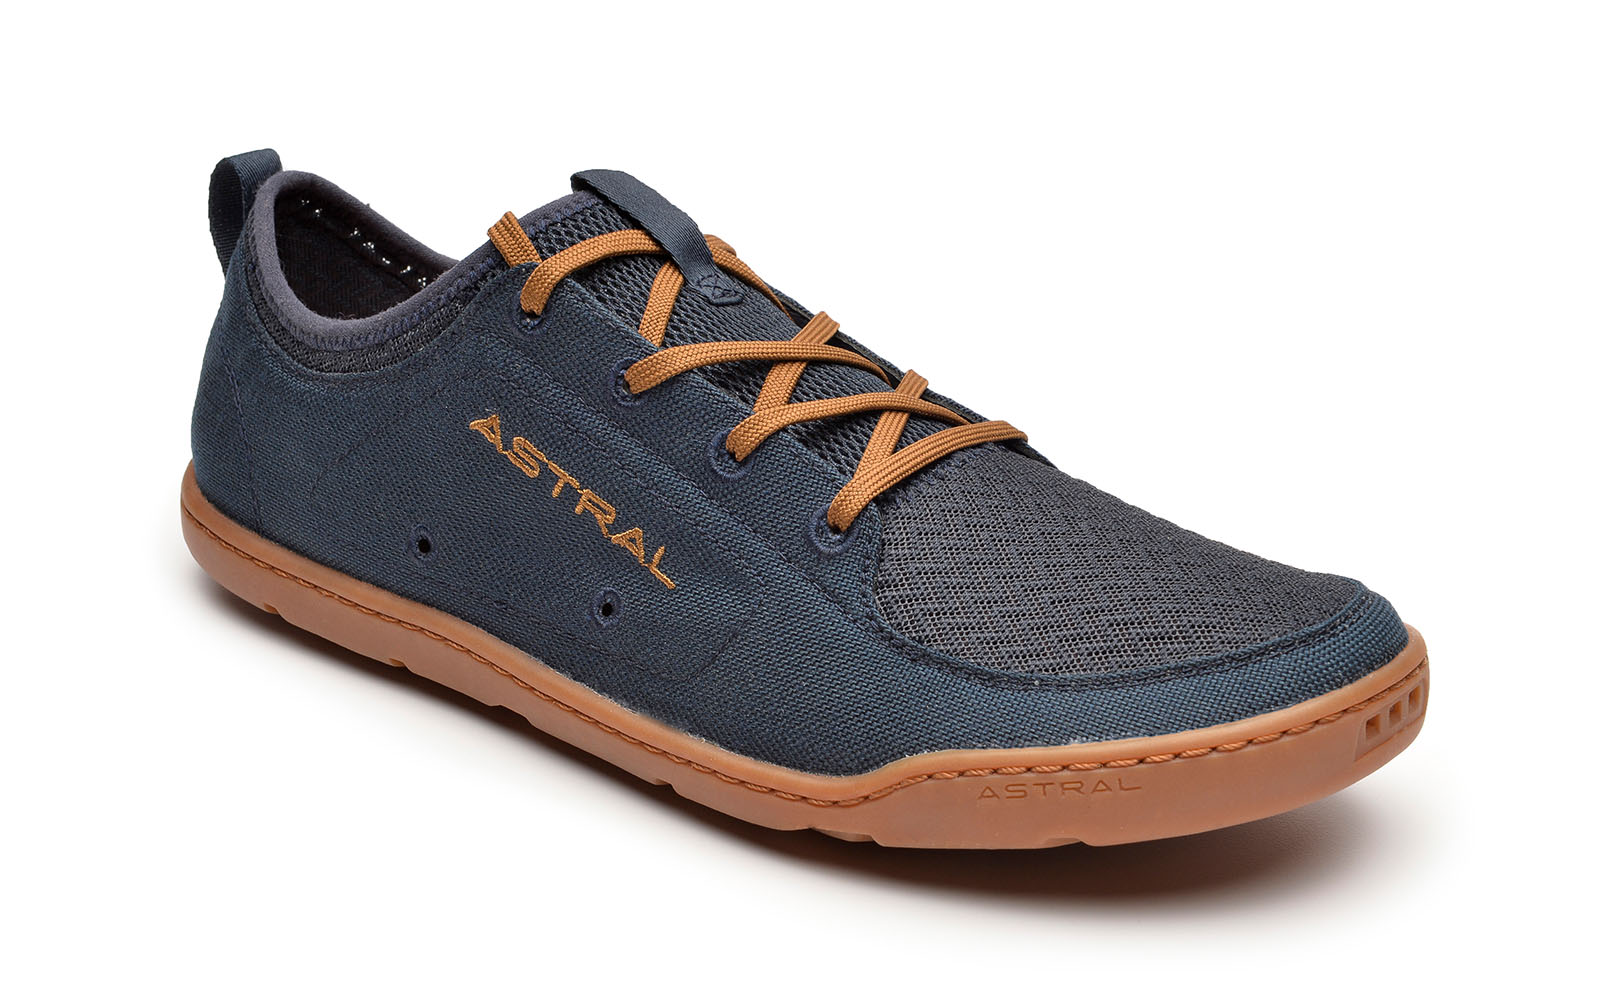 Loyak Men S Water Shoes Astral